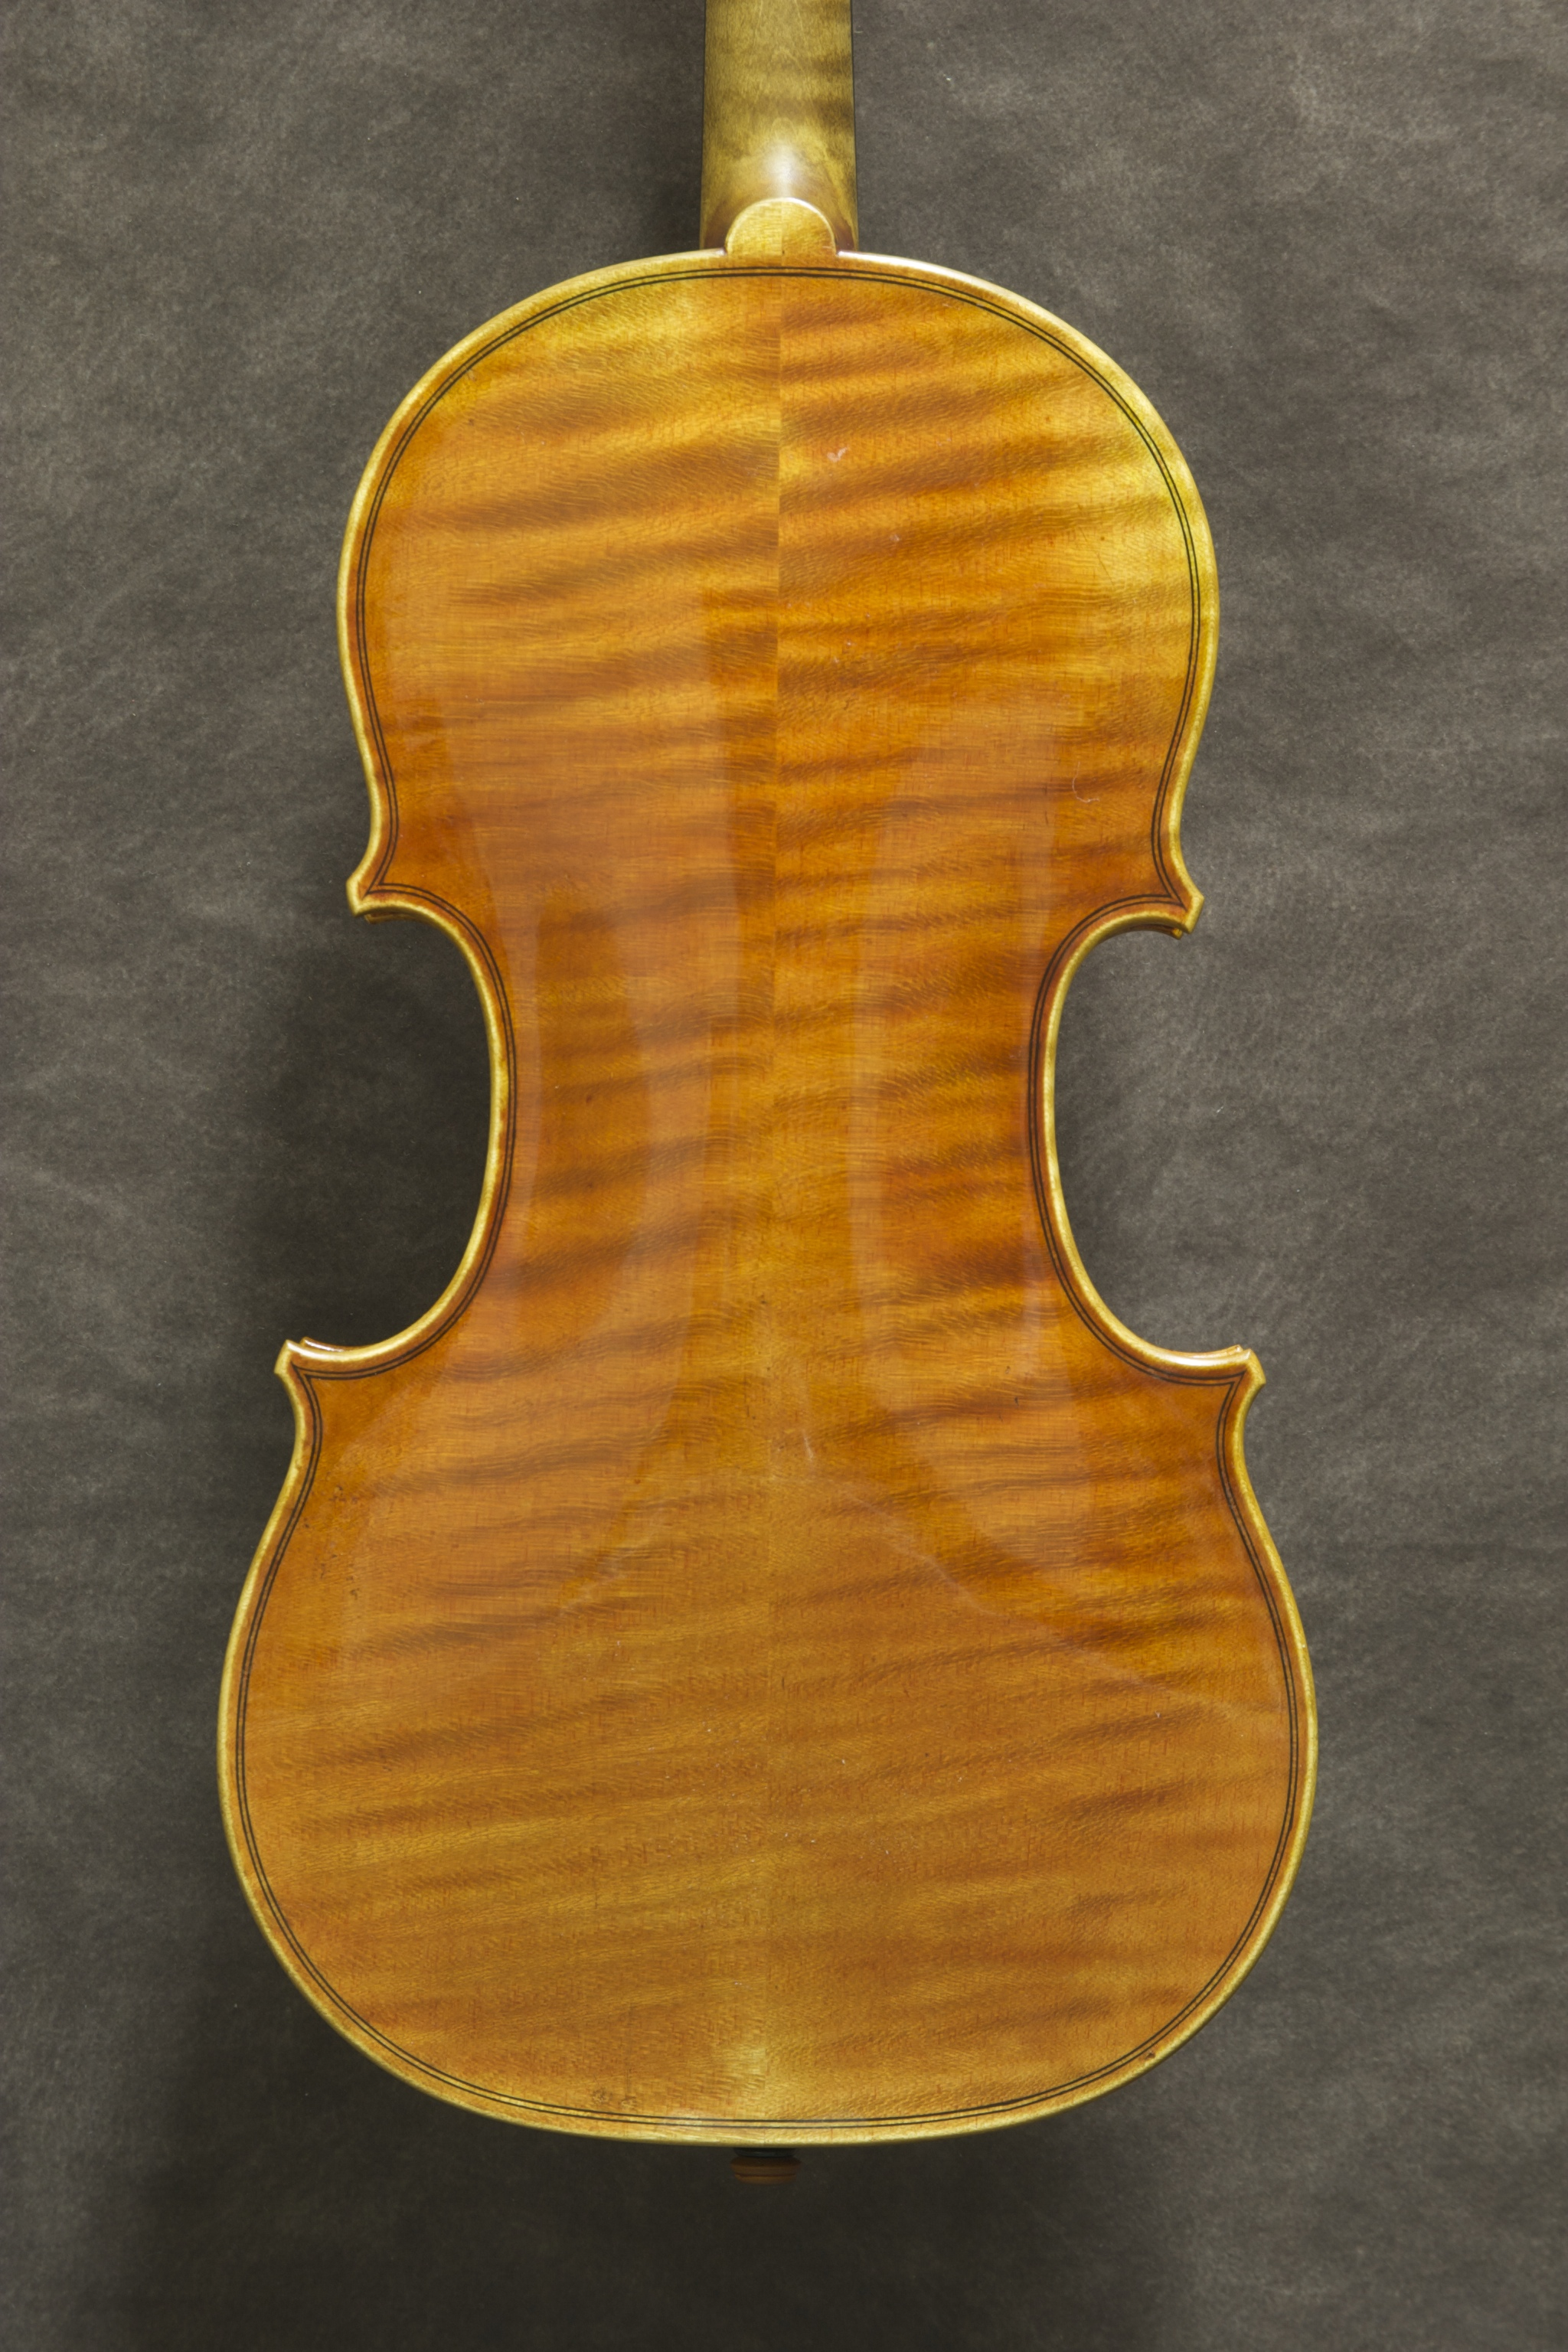 2005 violin, Fiorini model